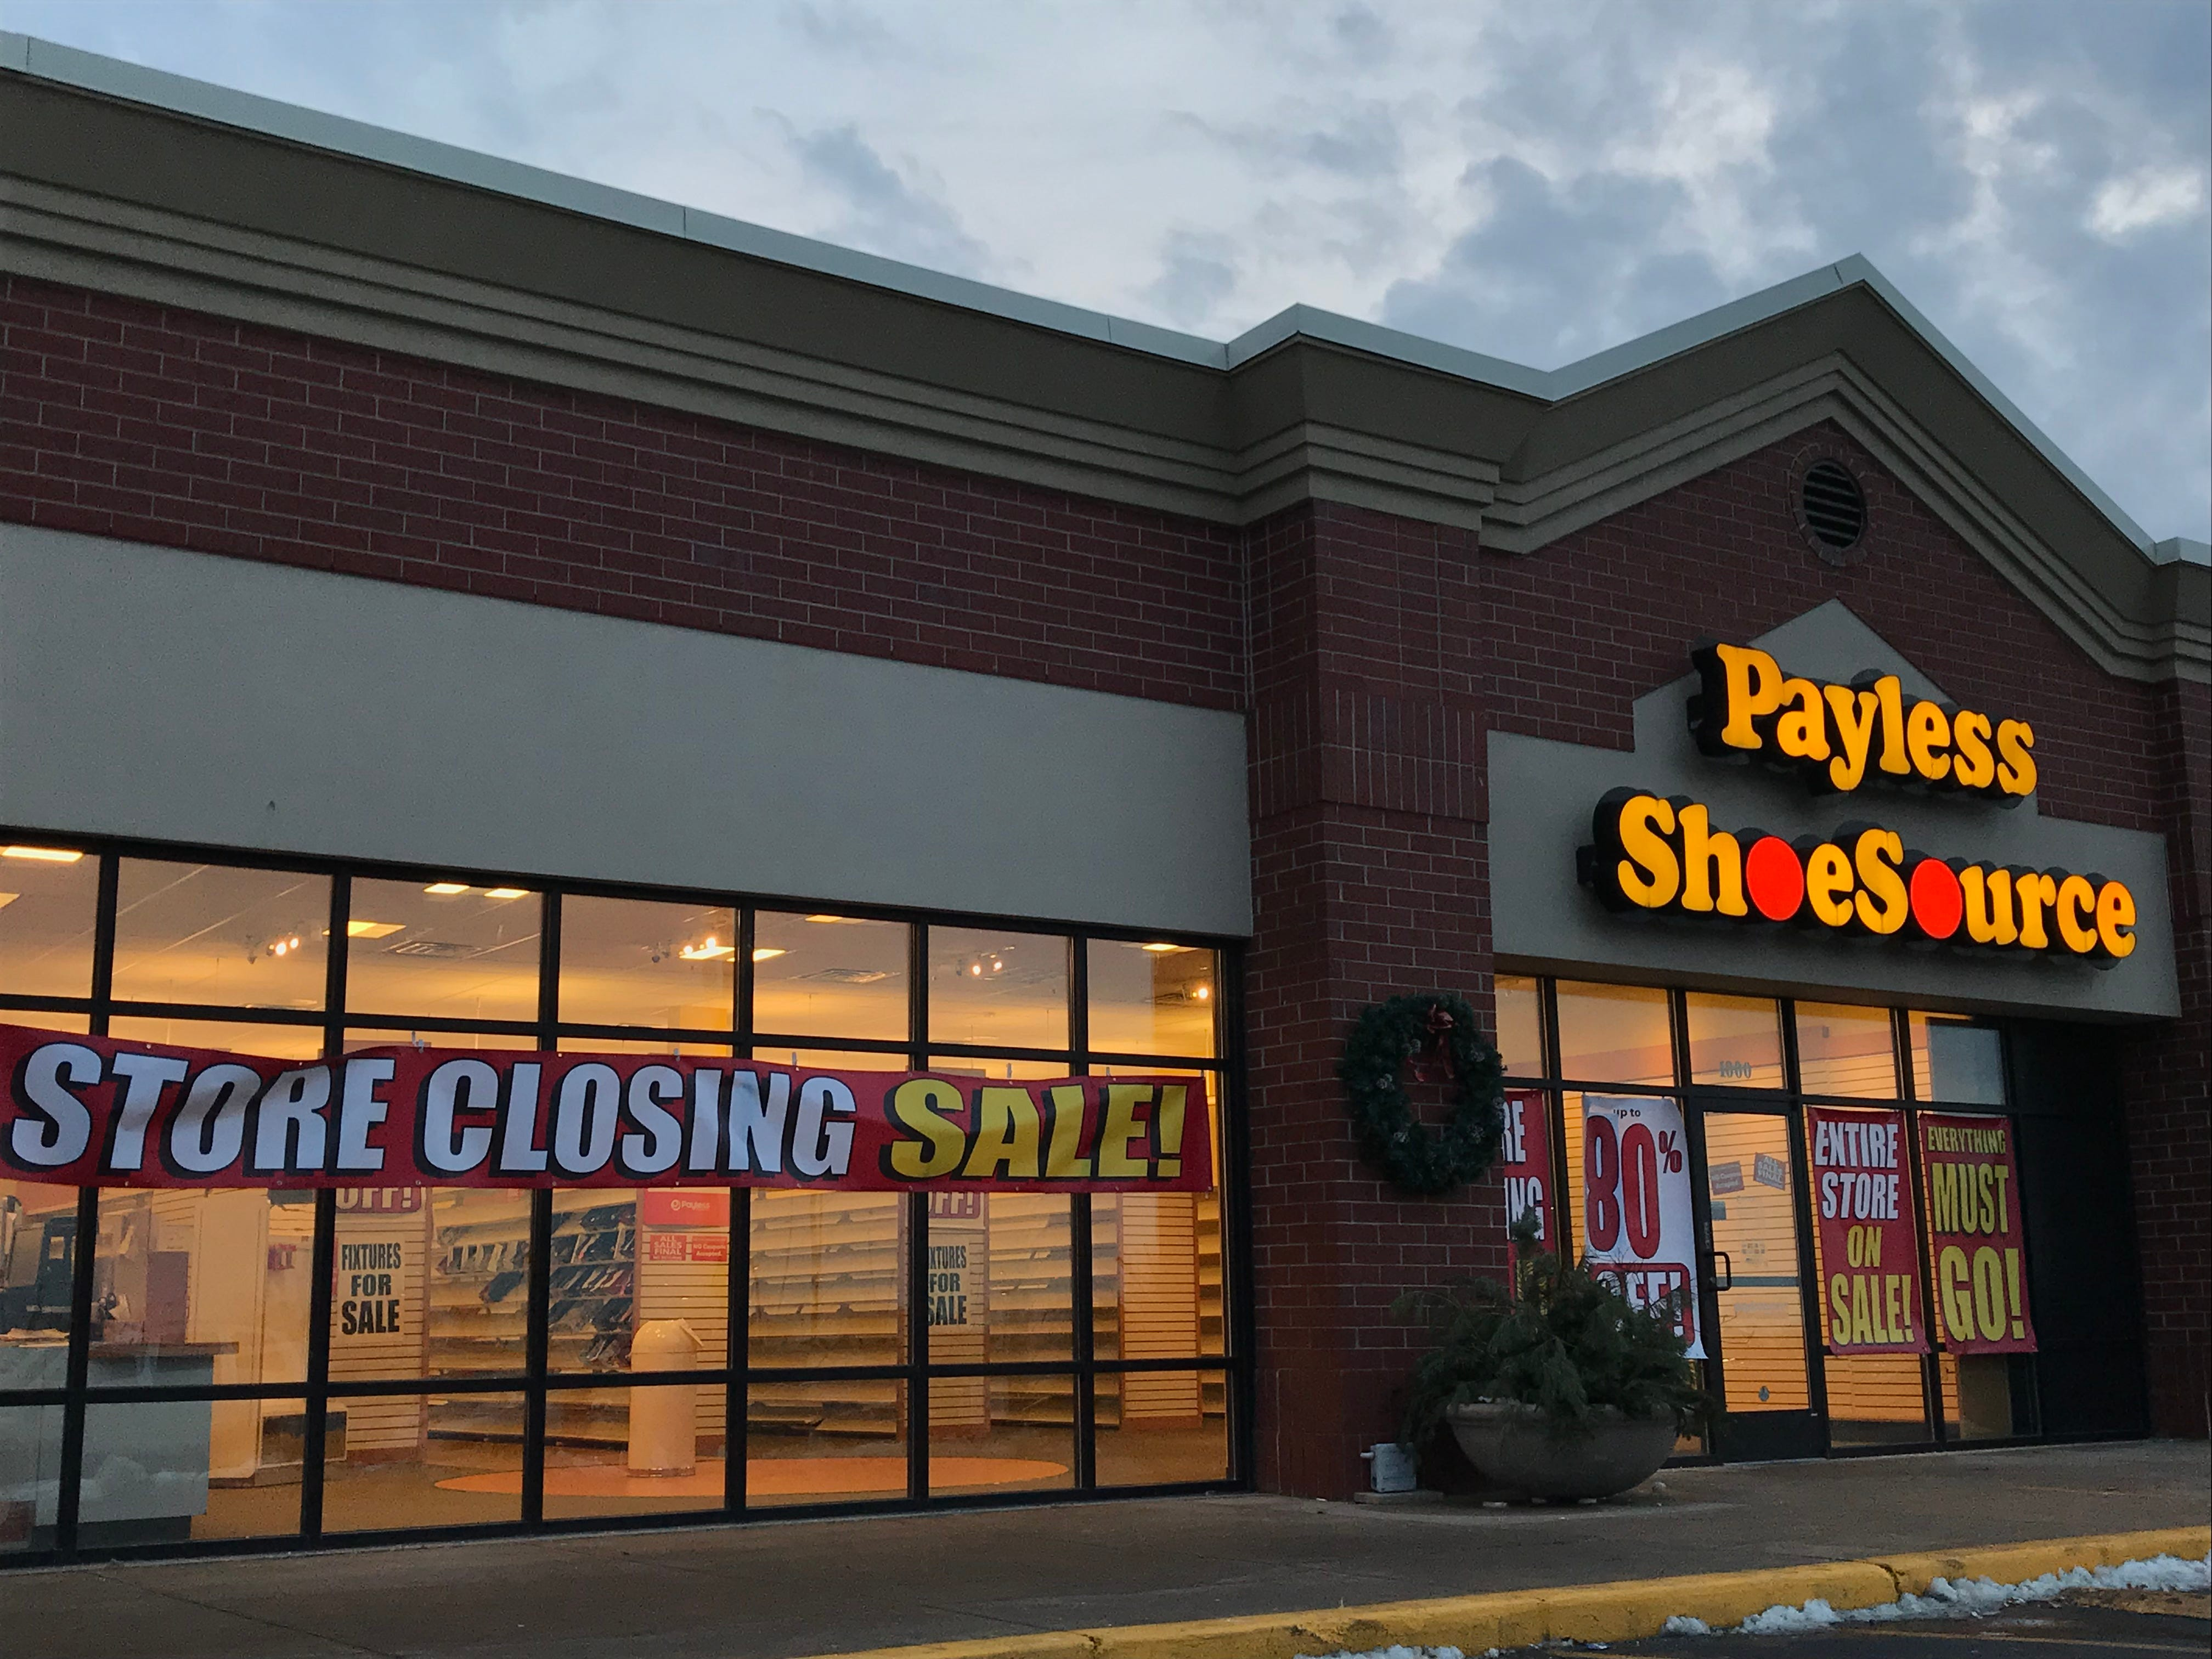 Payless ShoeSource stores closing